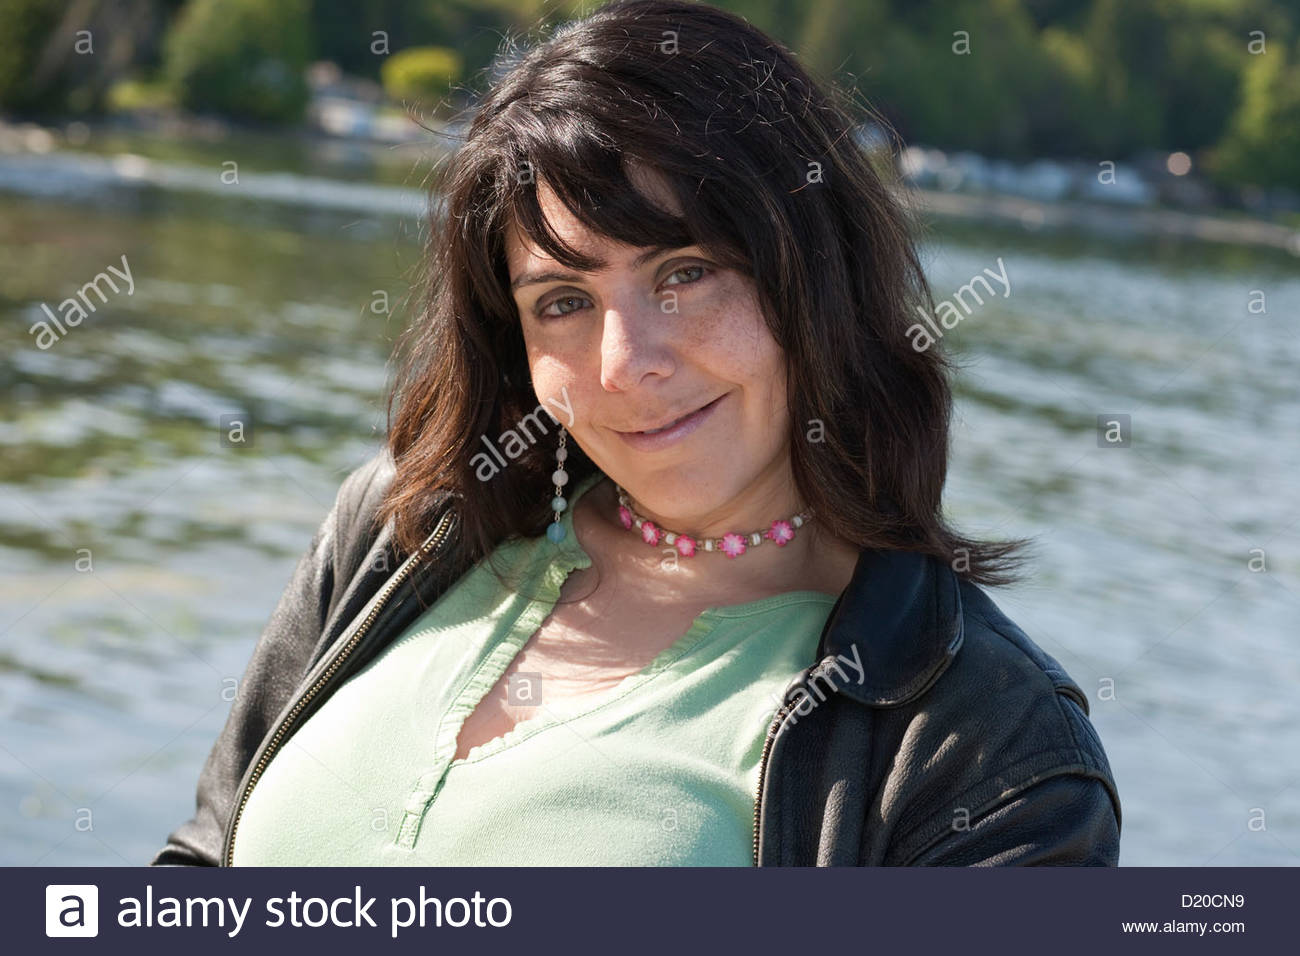 Beguiling Smile From A Dark Haired Full Figured Attractive Woman